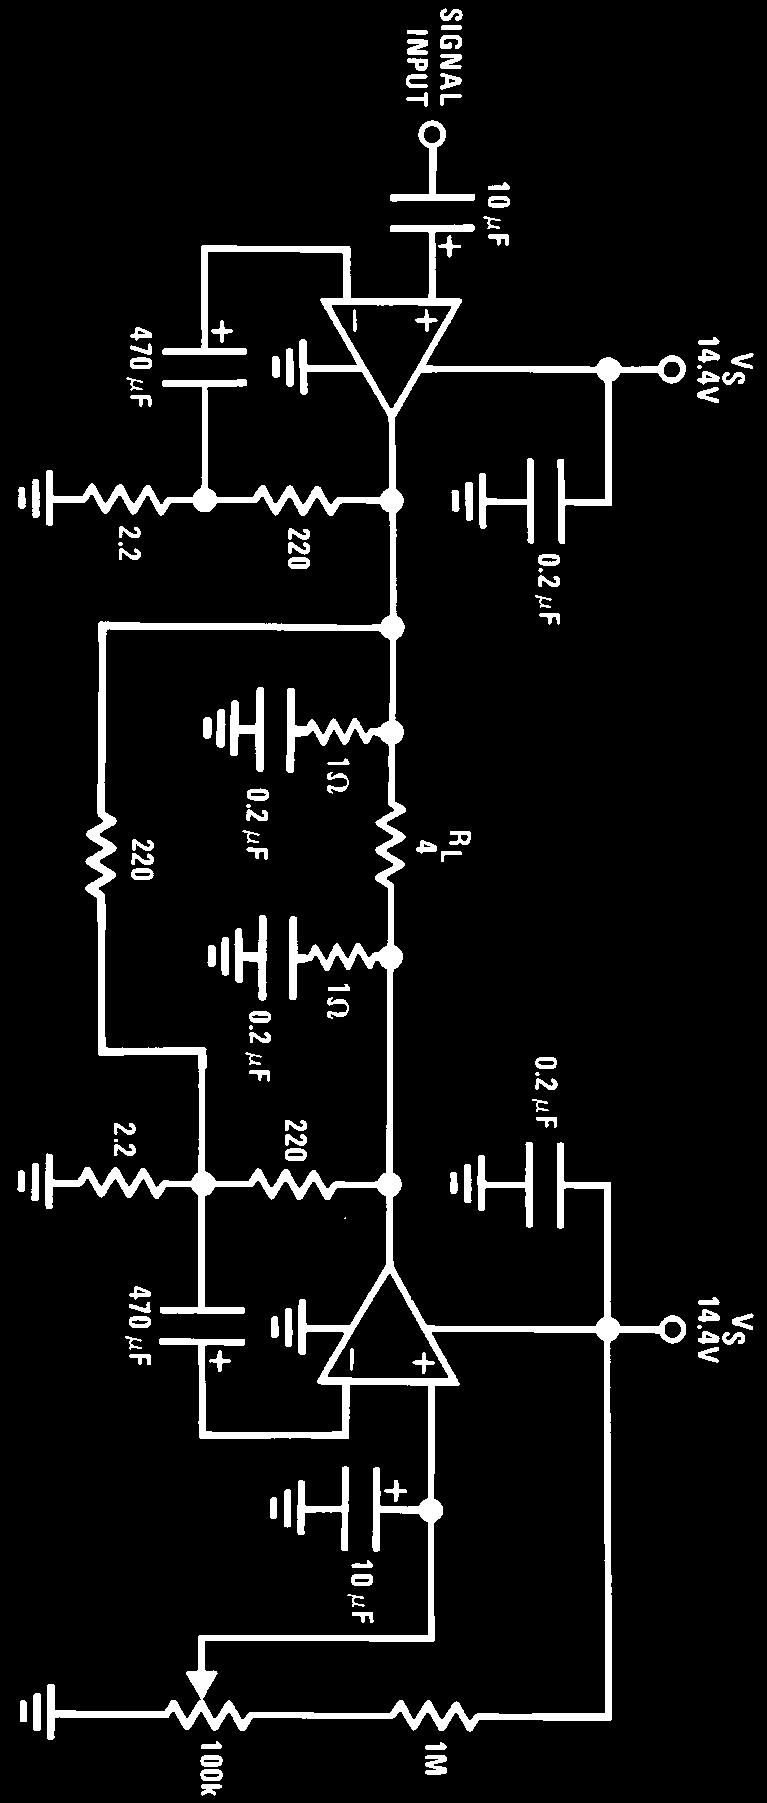 Lm383 Lm383a 7w Audio Power Amplifier Pdf Linear Regulated Dual Polarity Supply By Lm317 And Lm337 V S E 20v R L 4x